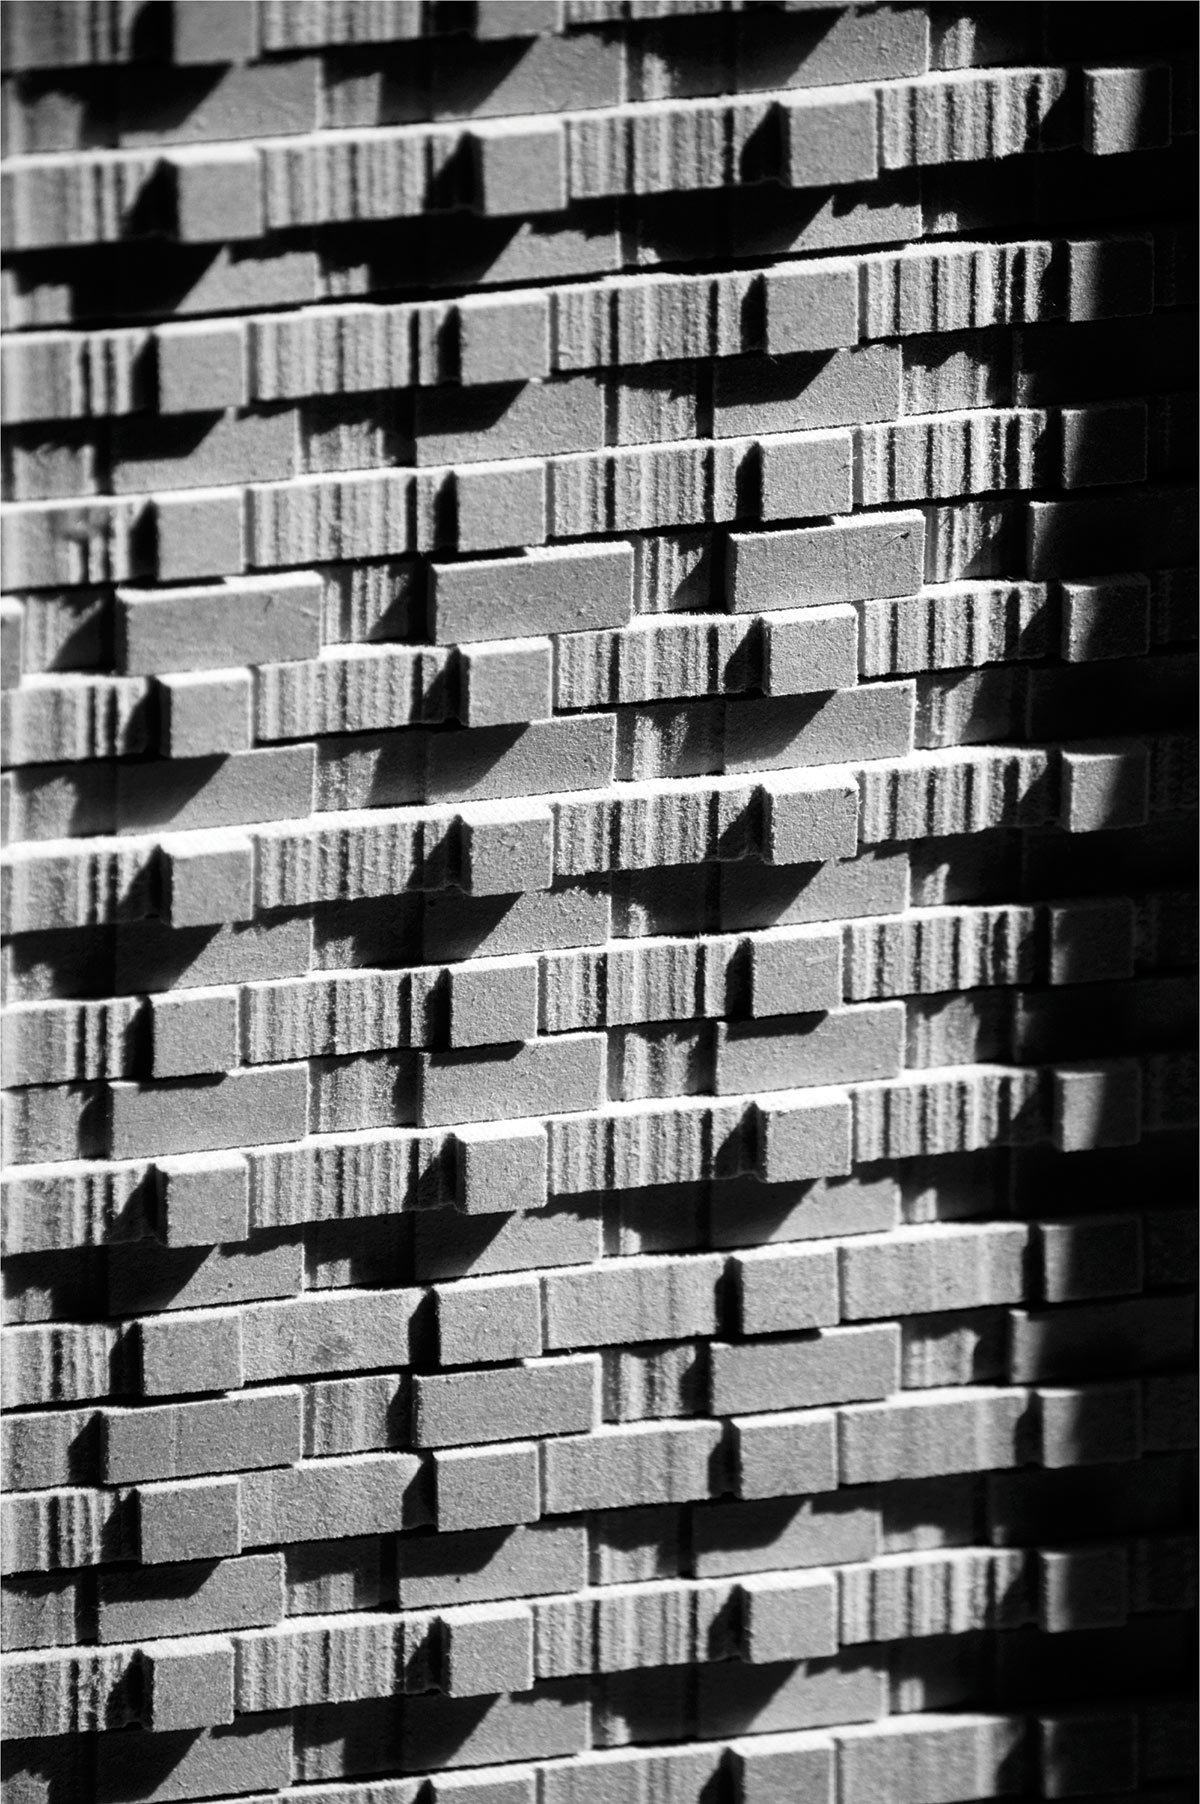 black and white image of a building facade - possibly brick